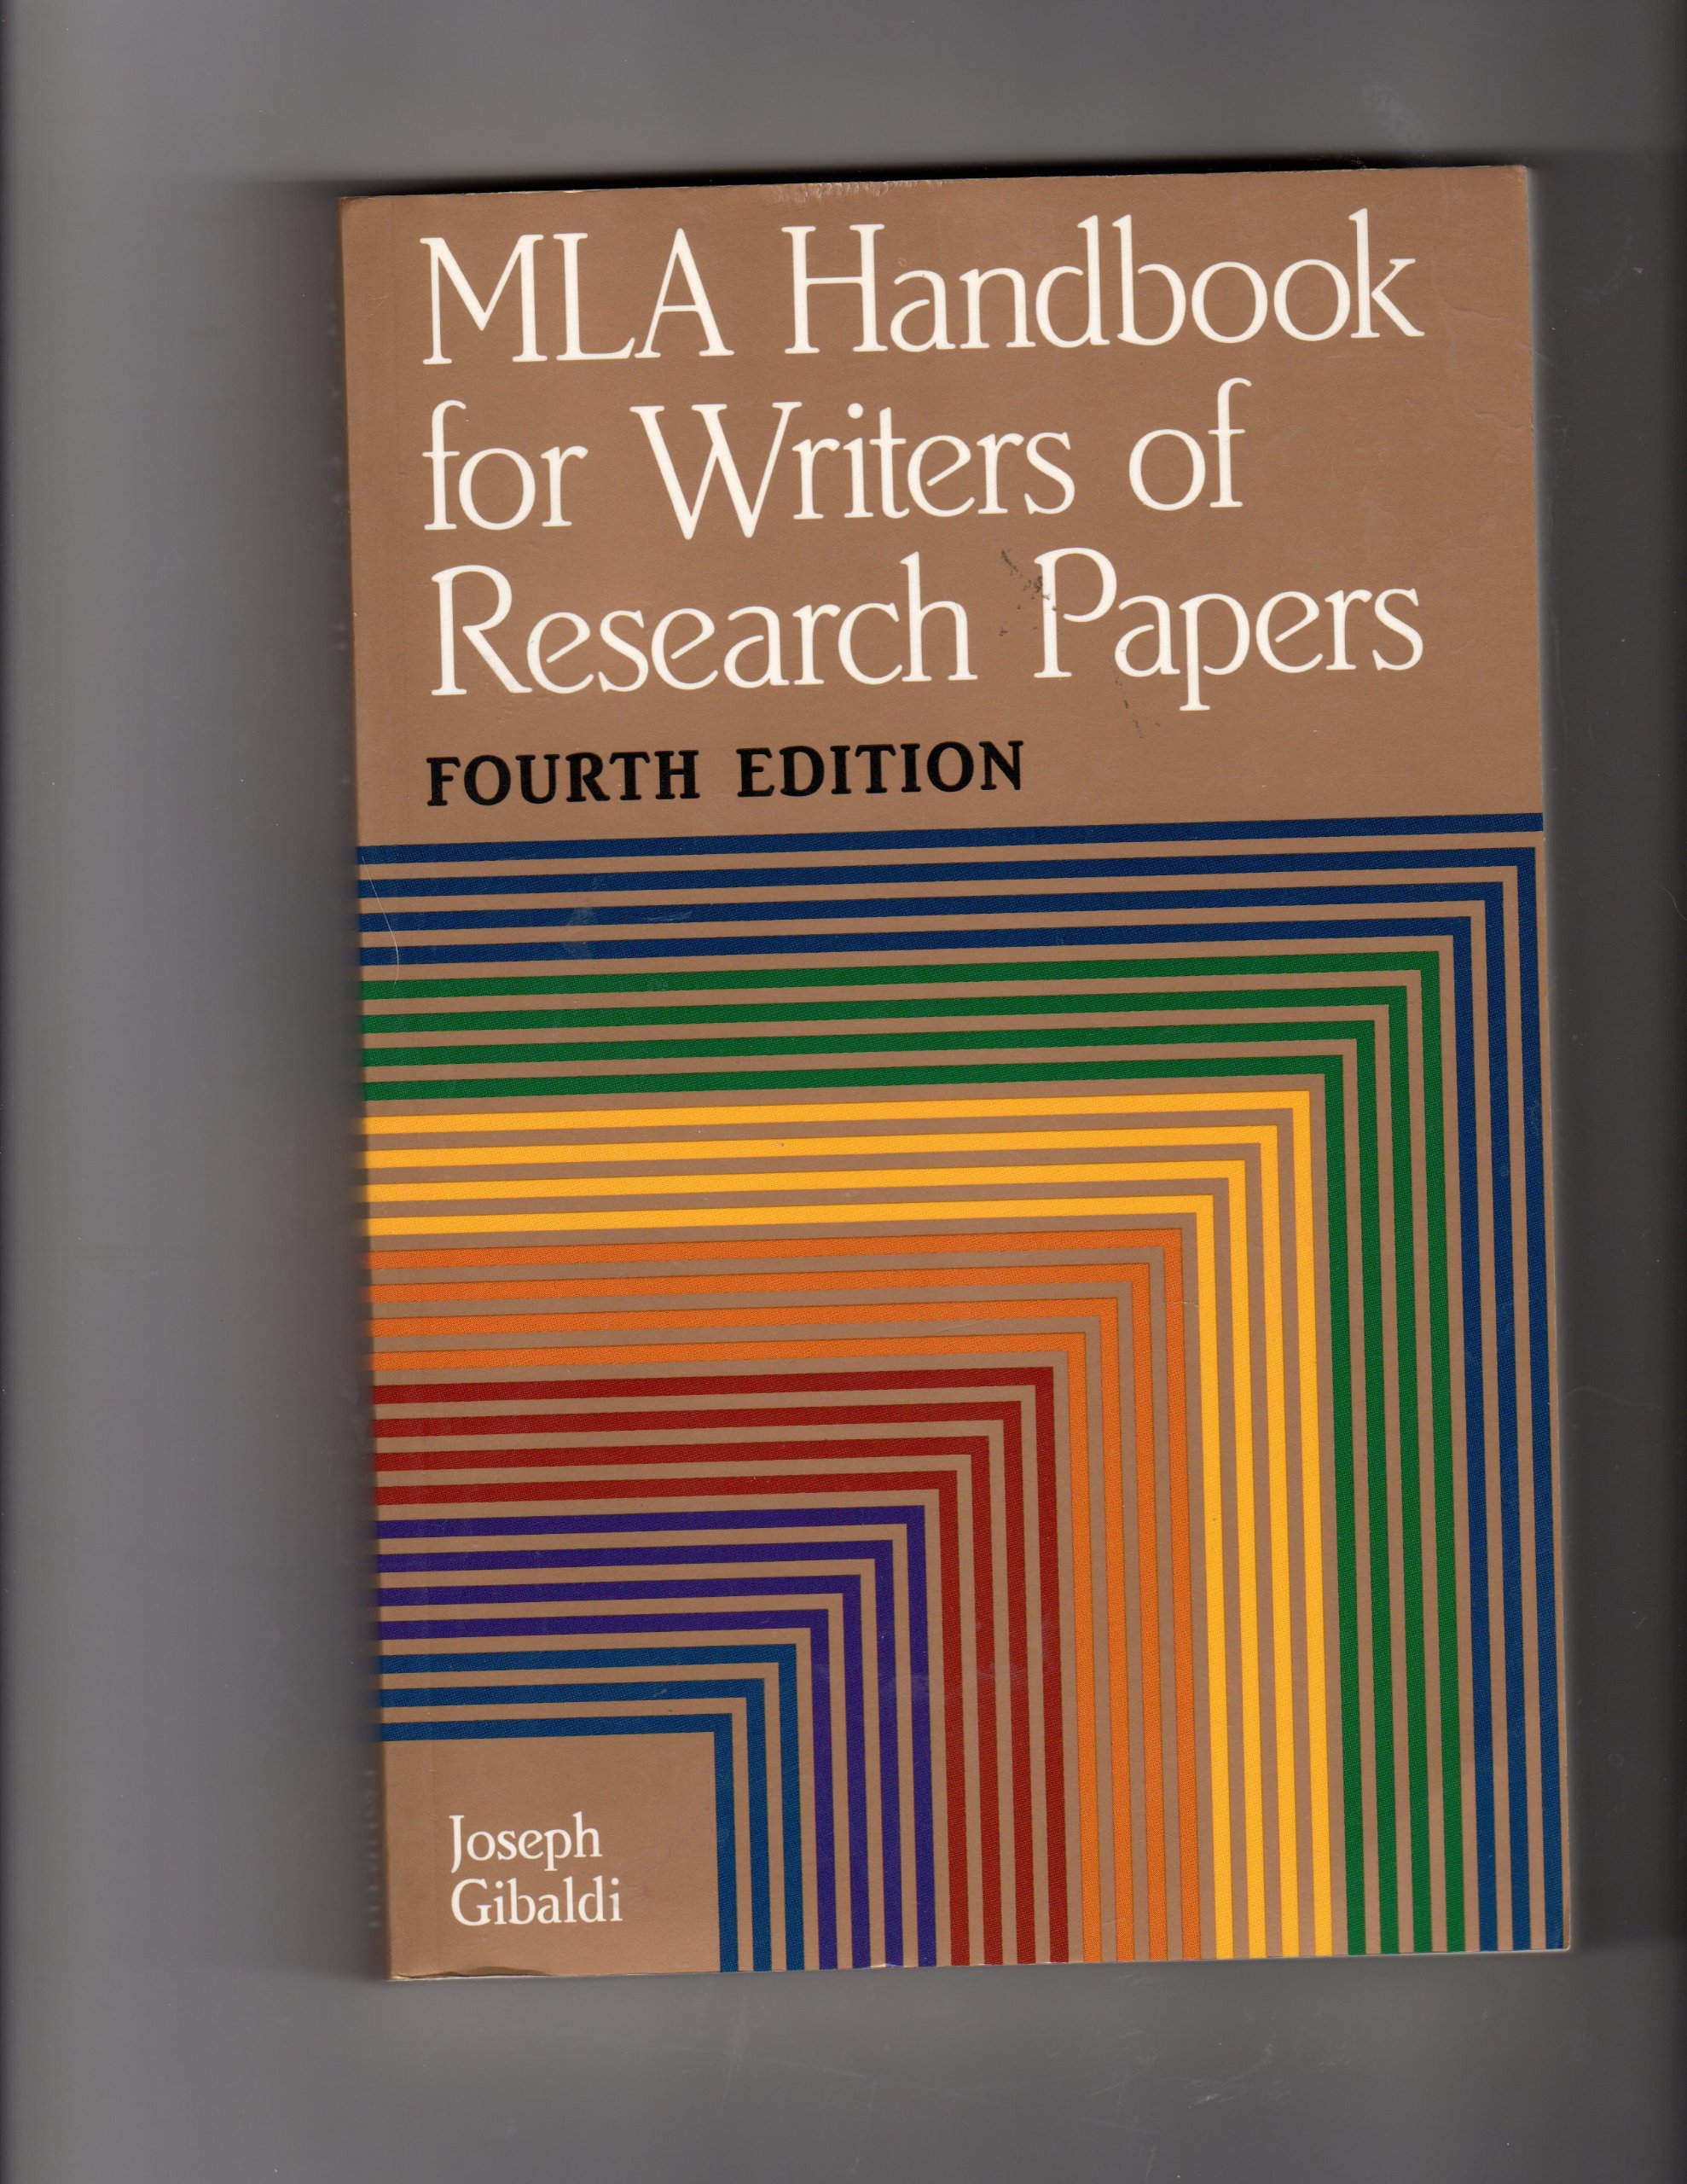 002 91or7esc2gl Mla Handbook For Writing Researchs Frightening Research Papers Writers Of 8th Edition Pdf Free Download According To The Full